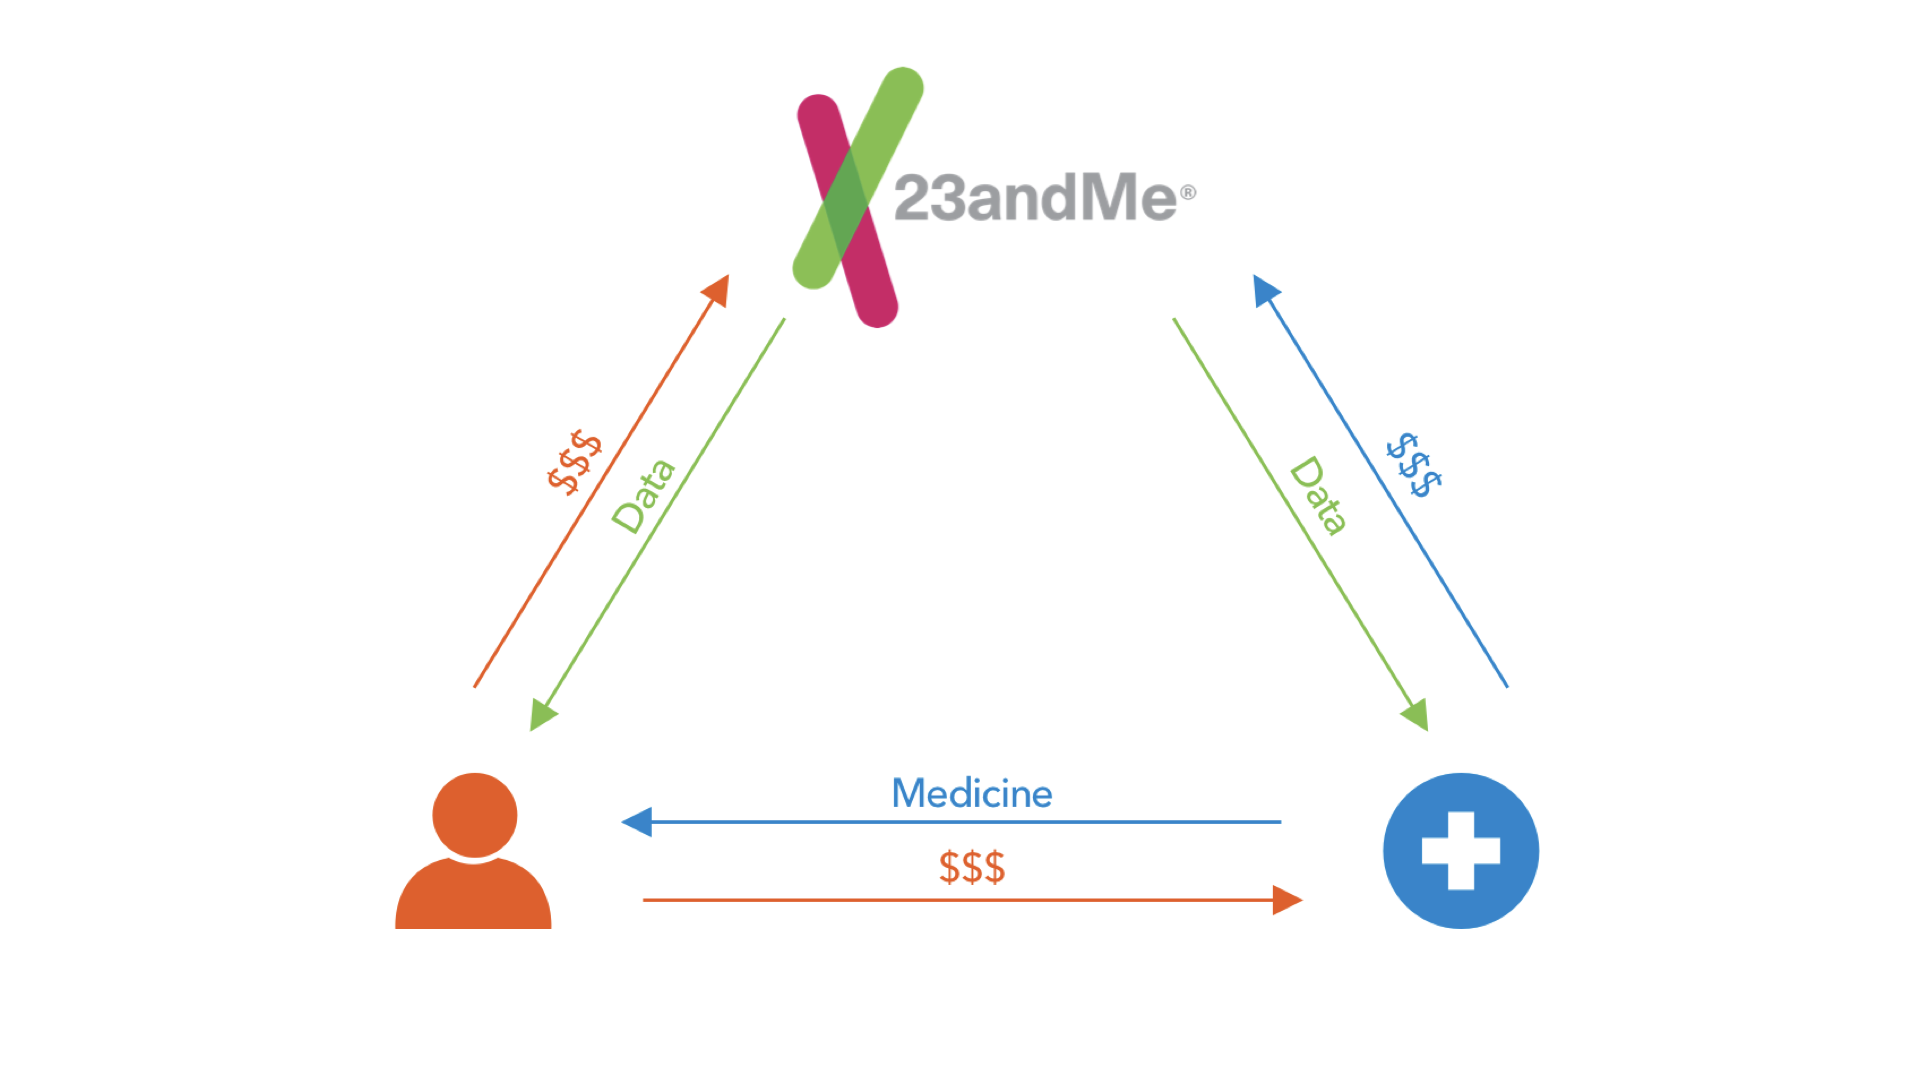 "1. The Model is Business-centric -""A Perfect model… for 23andme"" - As of now, 23andMe's model is working perfectly for them, bringing in money from users and pharmaceutical companies to access genetic information. But the user is peripheral in 23andMe's platform, provided with little benefit, paying to have their information accessed and to access the medicine that would benefit them. Moving forward, 23andMe would be smart to consider the user first and foremost in their experience."